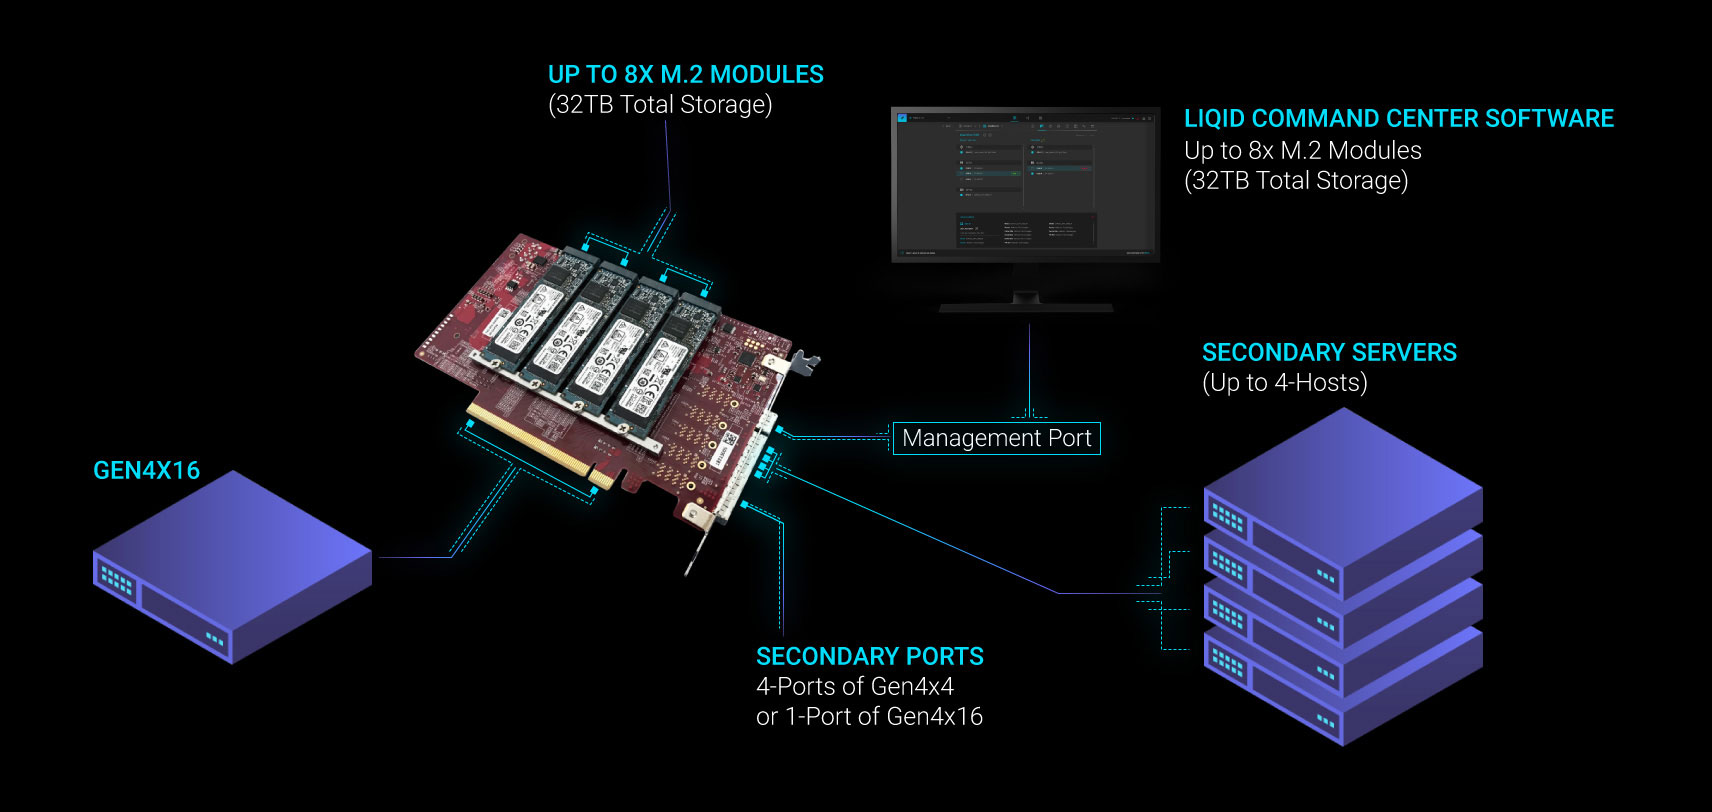 Liqid Element LQD4000 high capacity and performance PCIe NVMe composable storage SSD